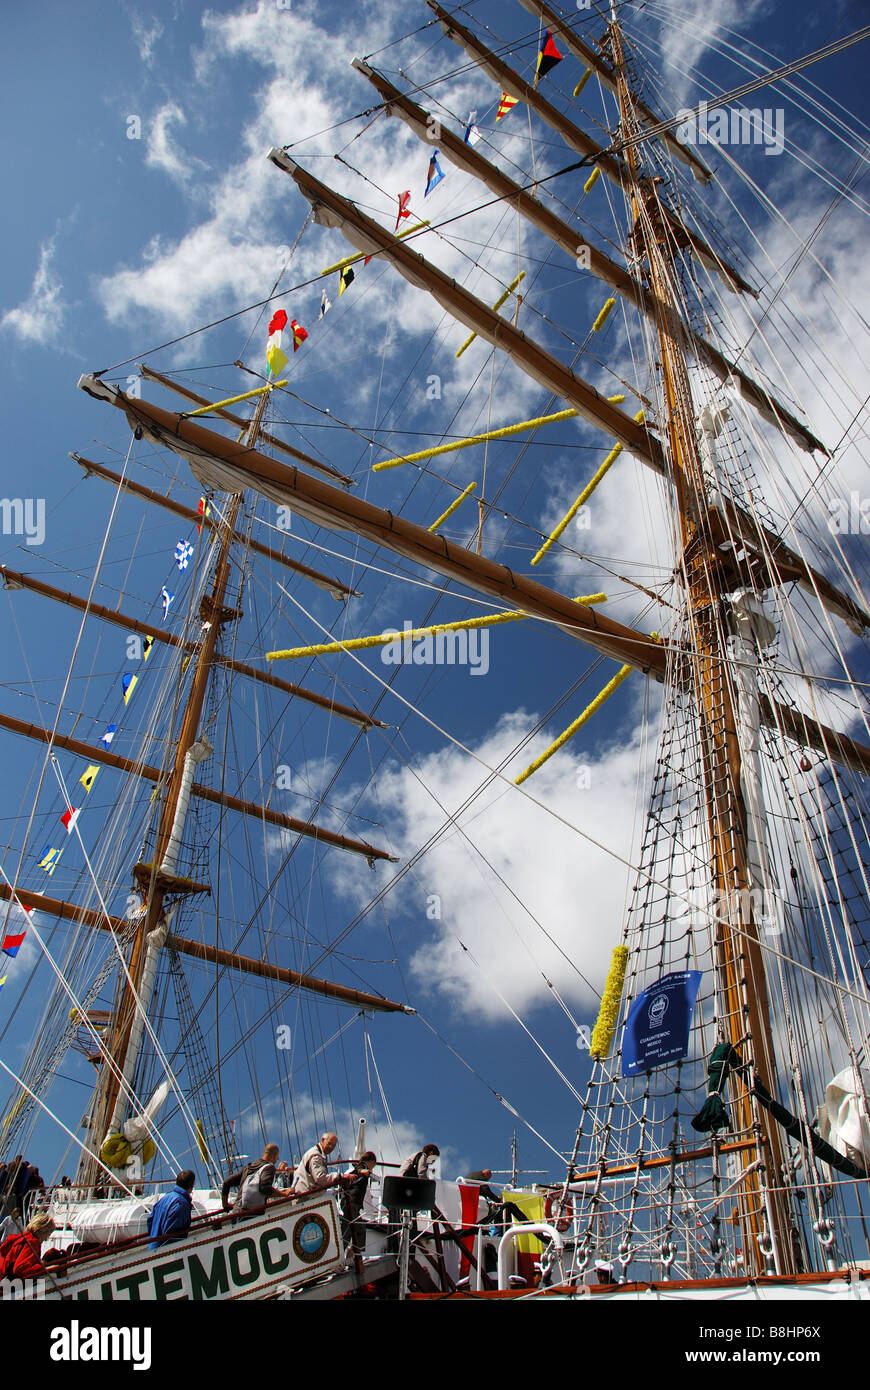 Tall Ship Cuauhtemoc moored at Liverpool prior to the Tall Ships Race Stock Photo